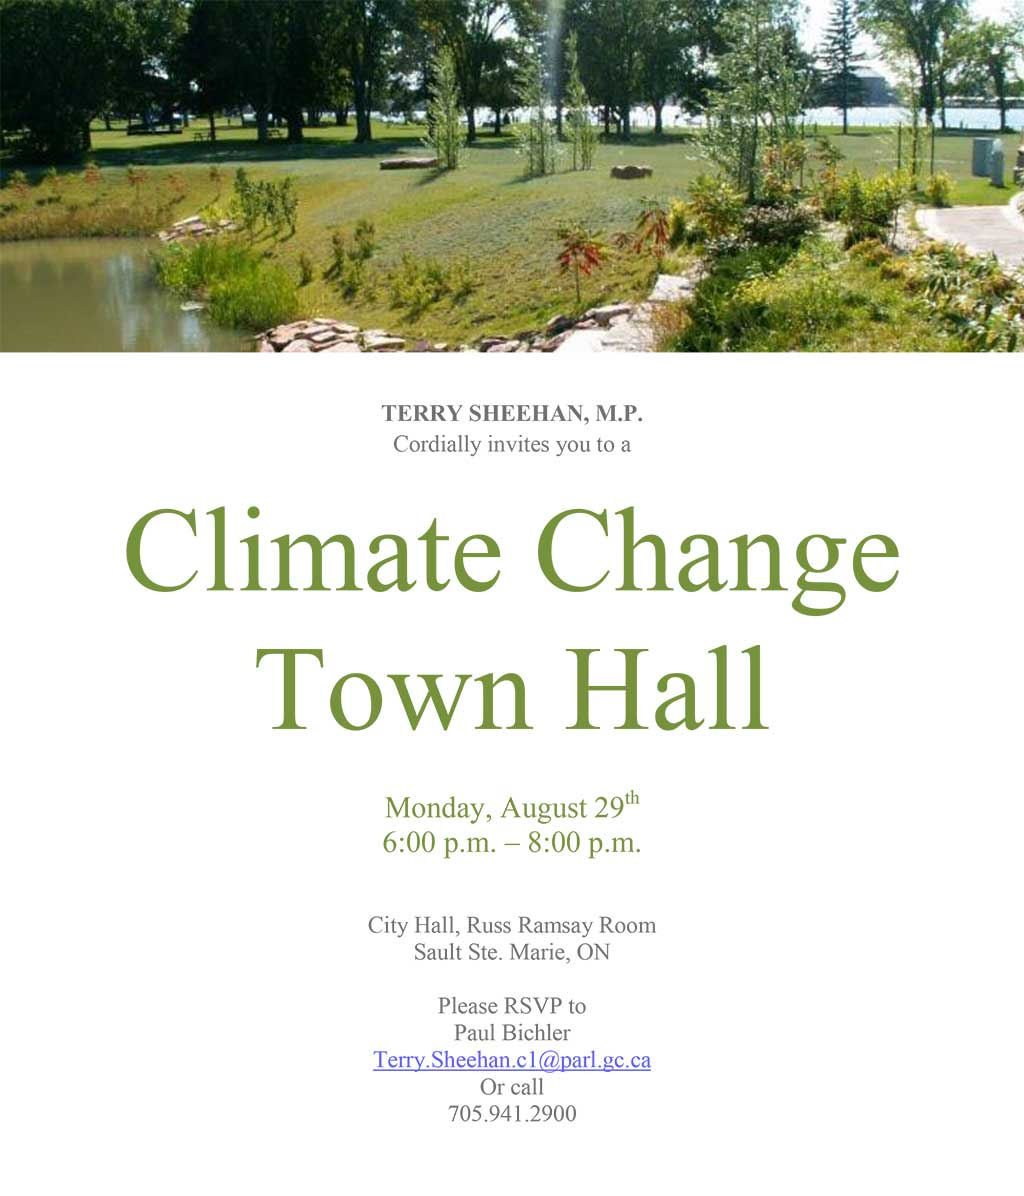 Climate Change Town Hall